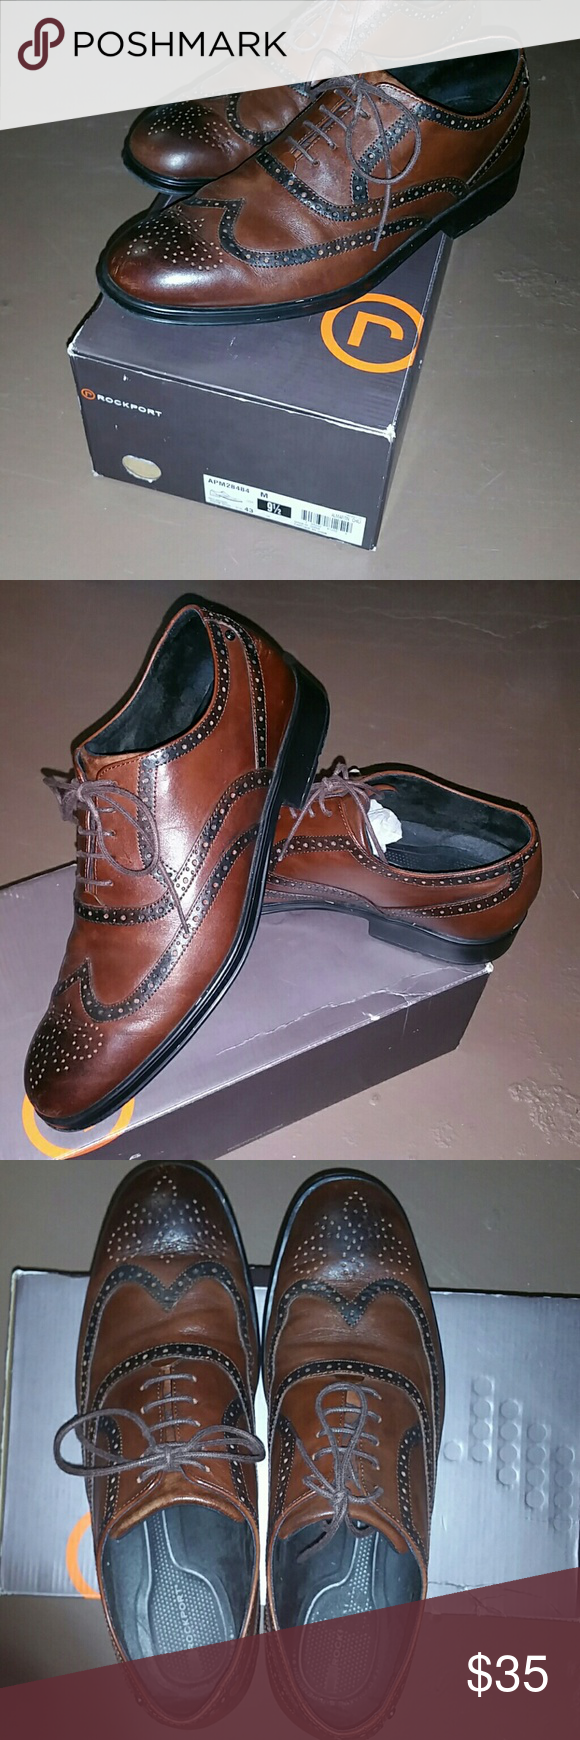 Rockport mahogany wingtips These red Brown mahogany wingtips with black edging and shining toes are spectacularly sharp. Clean with very little wear got for my wedding look great on size Mens 9.5 fits 10 Rockport Shoes Oxfords & Derbys